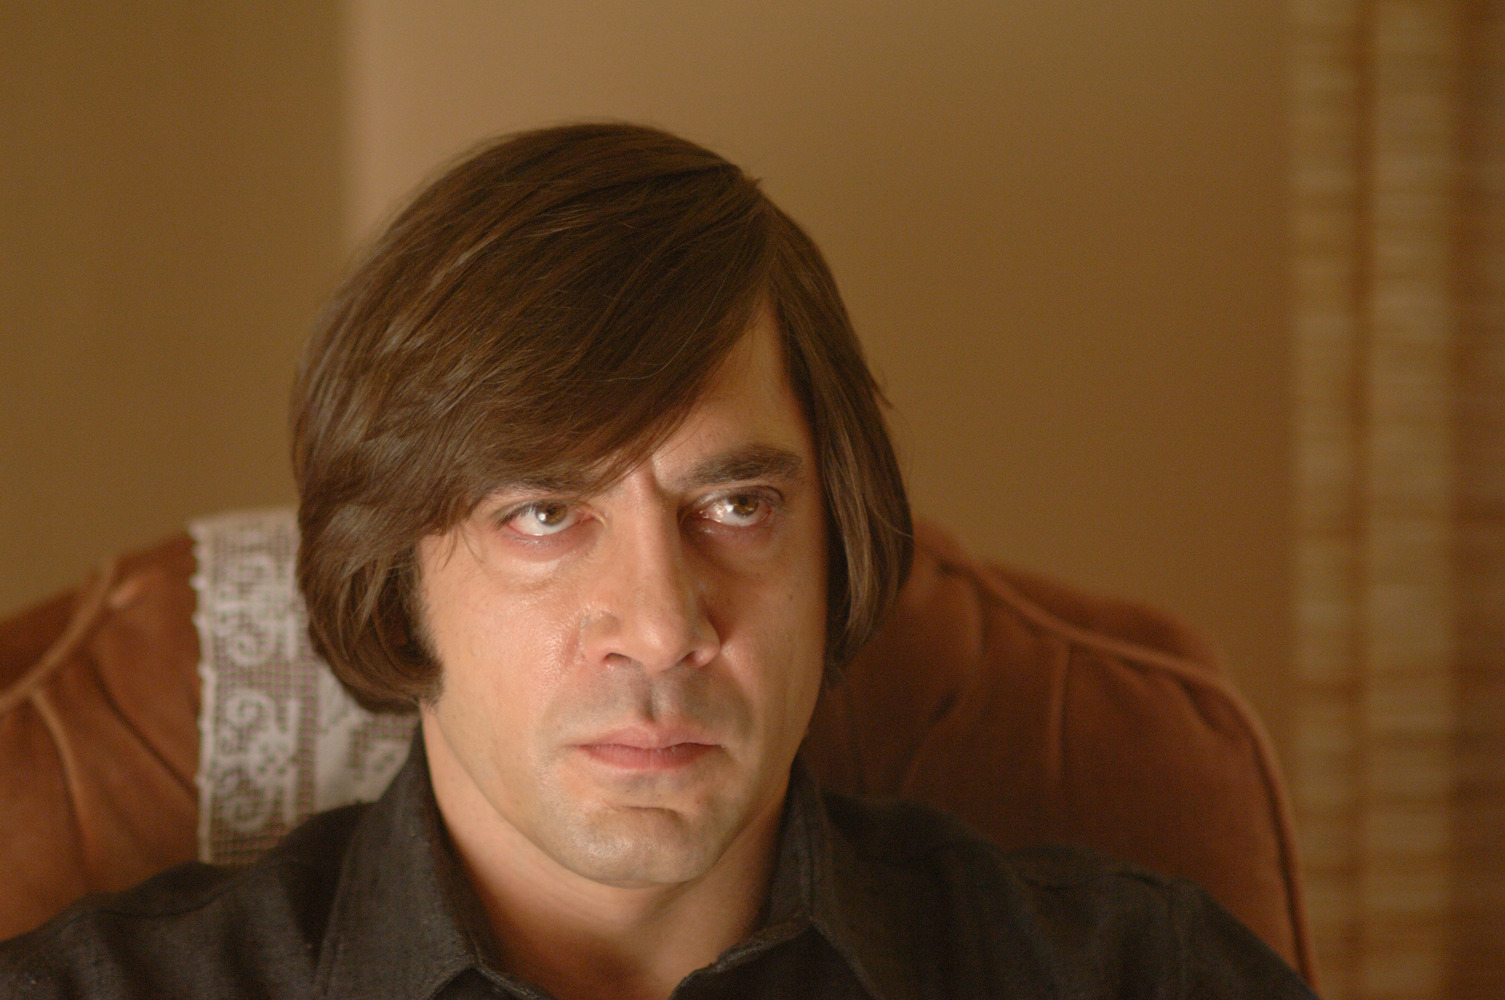 No Country For Old Men Wallpaper Hd Cindy Bruchman